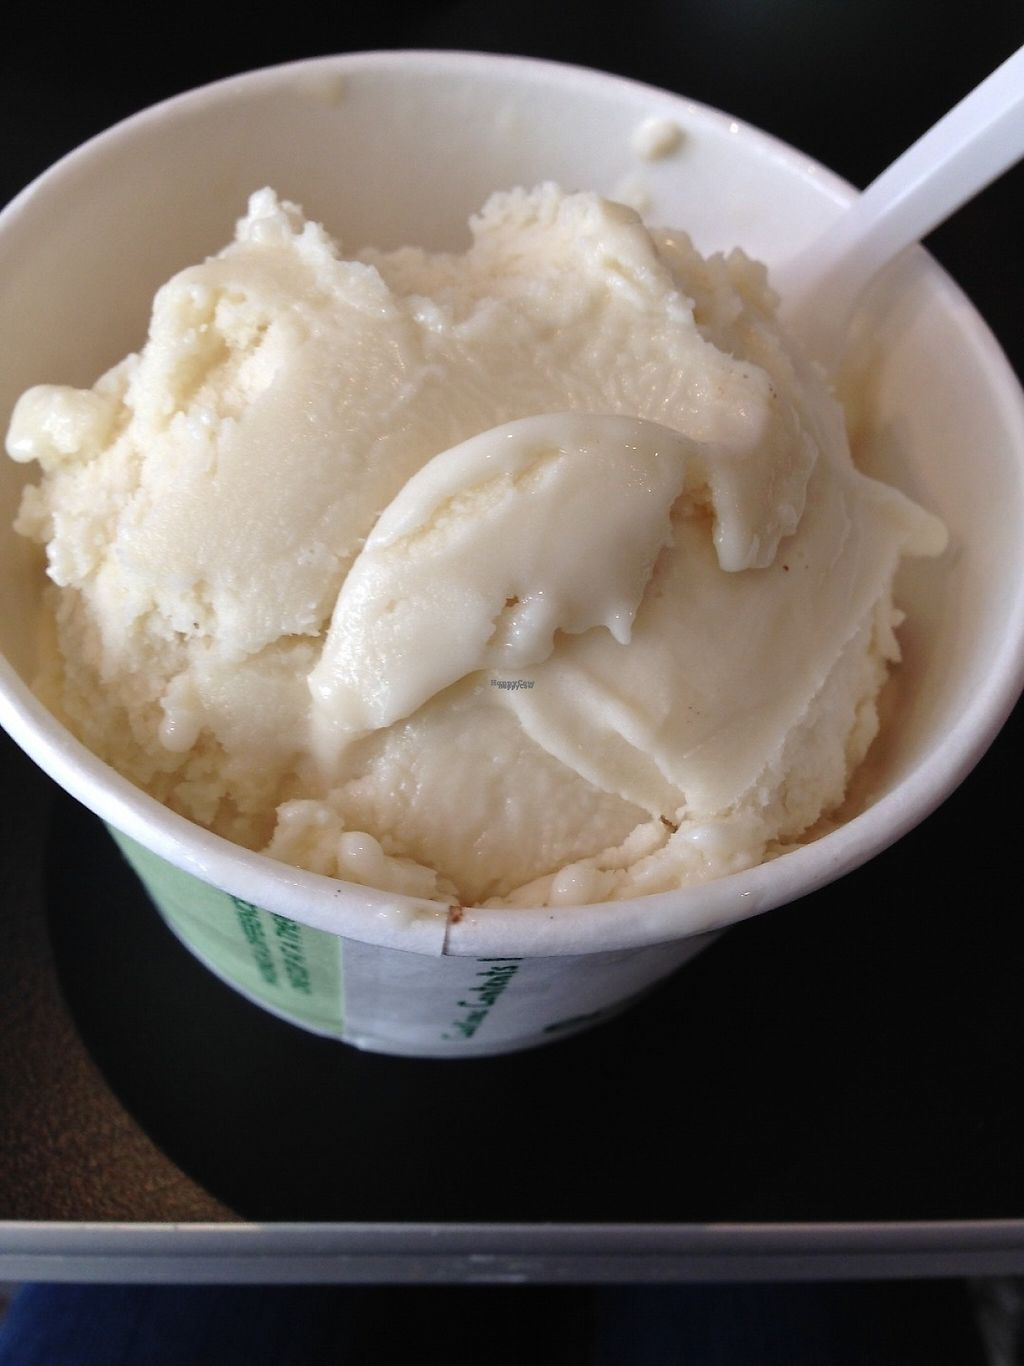 """Photo of Waffle Frolic  by <a href=""""/members/profile/brooke____bear"""">brooke____bear</a> <br/>Vegan vanilla ice cream <br/> April 18, 2017  - <a href='/contact/abuse/image/32945/249527'>Report</a>"""